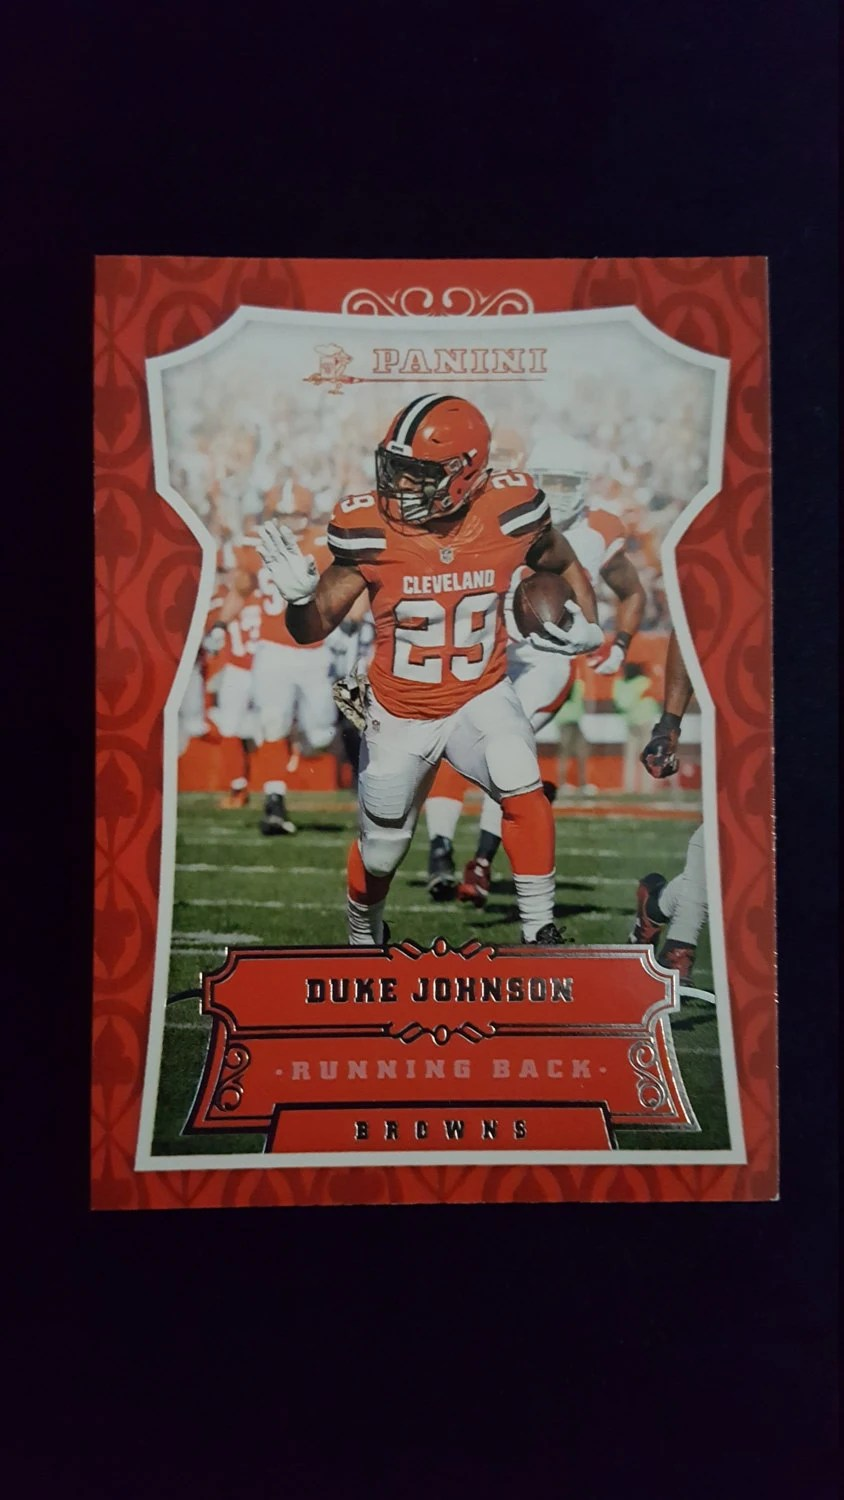 Cleveland Browns Birthday Card Featuring Duke Johnson On A